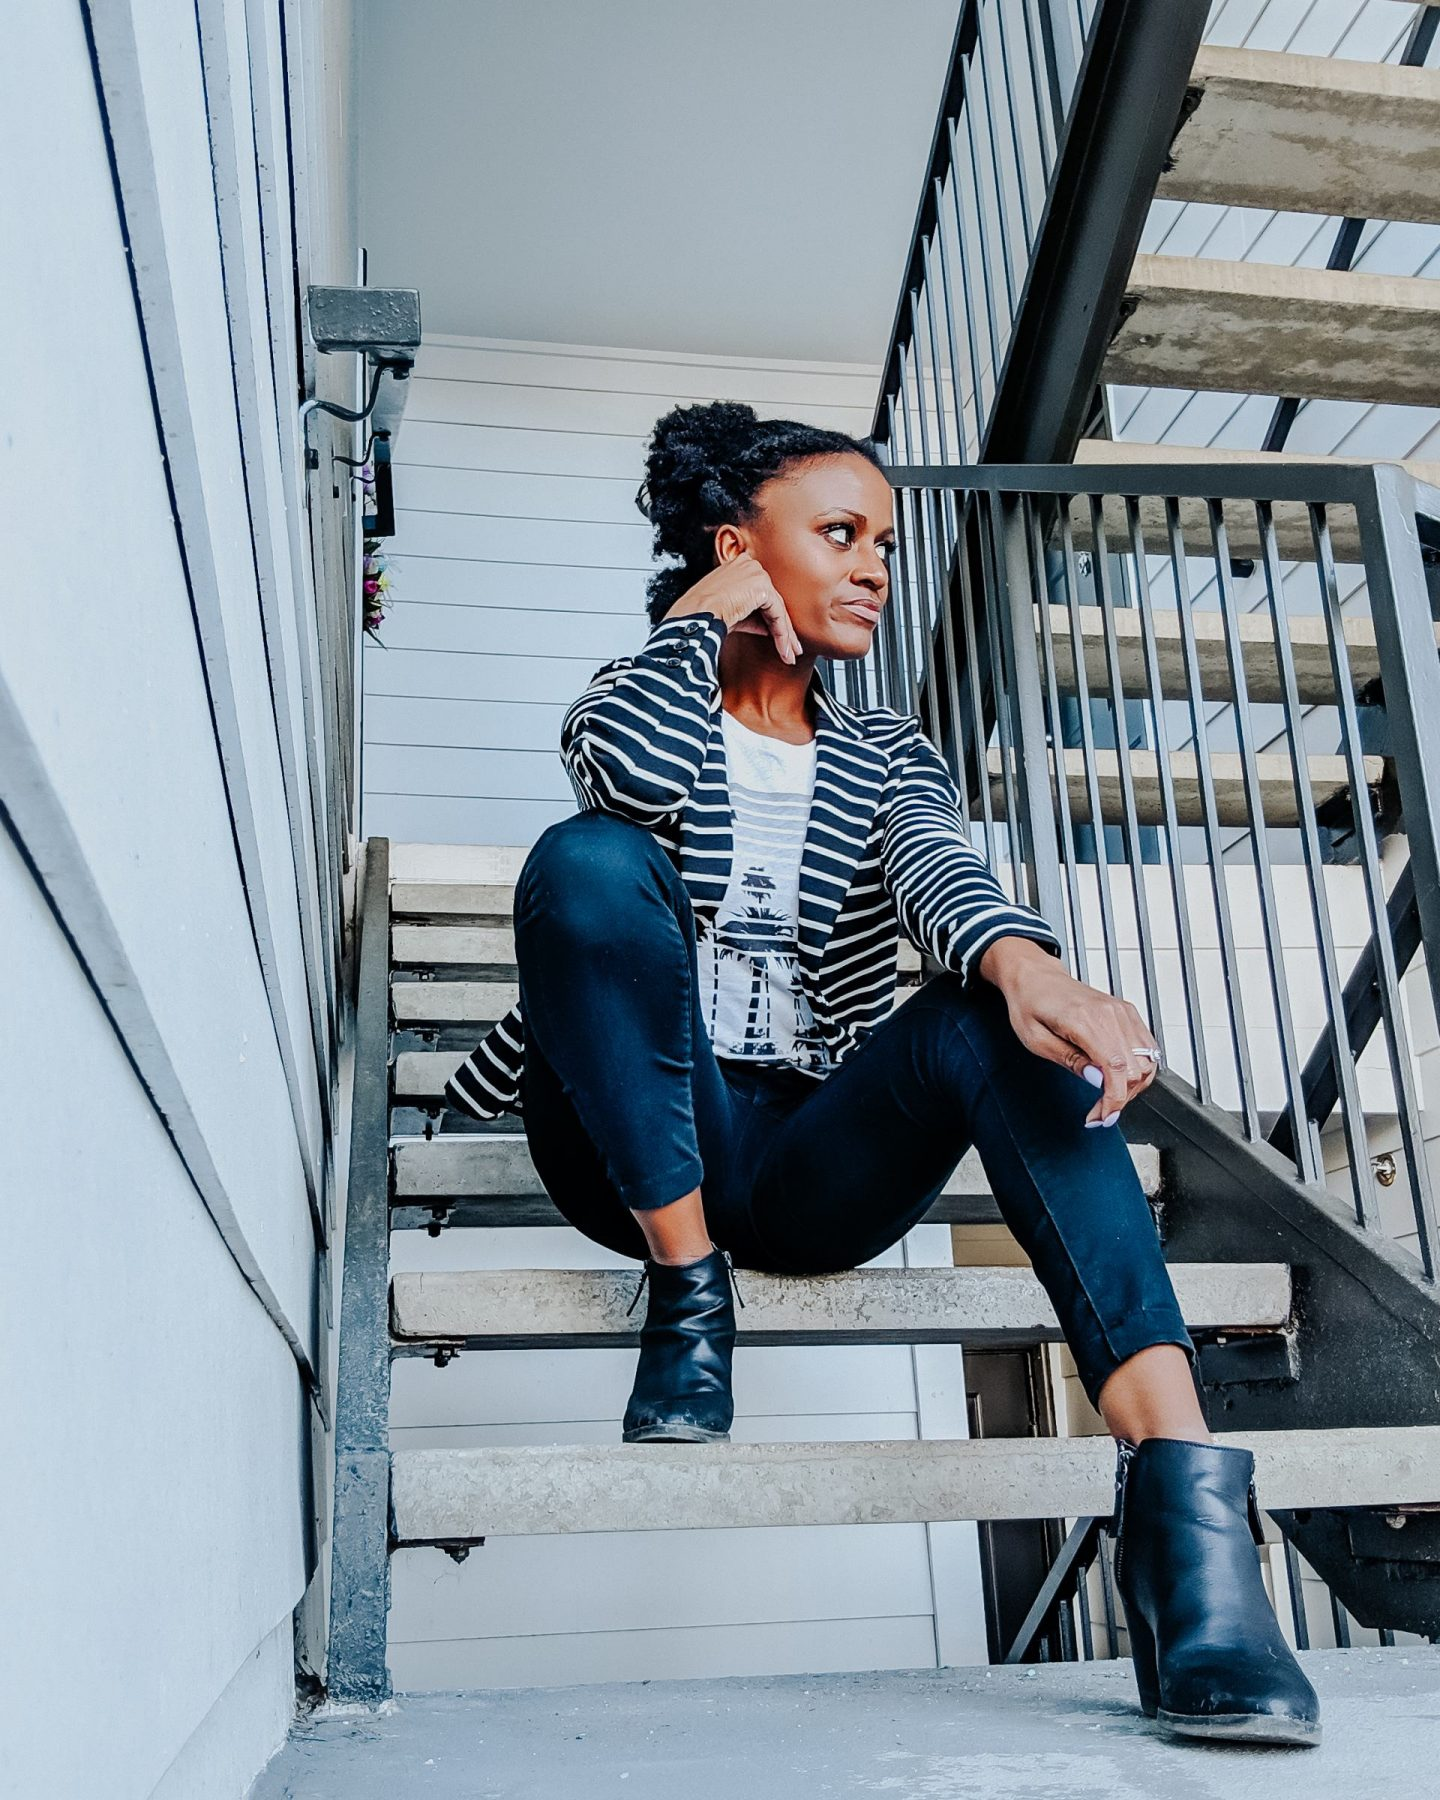 Black woman sitting on stairs with black and white striped blazer and shirt, black pants, black booties, hand on chin looking to the right.